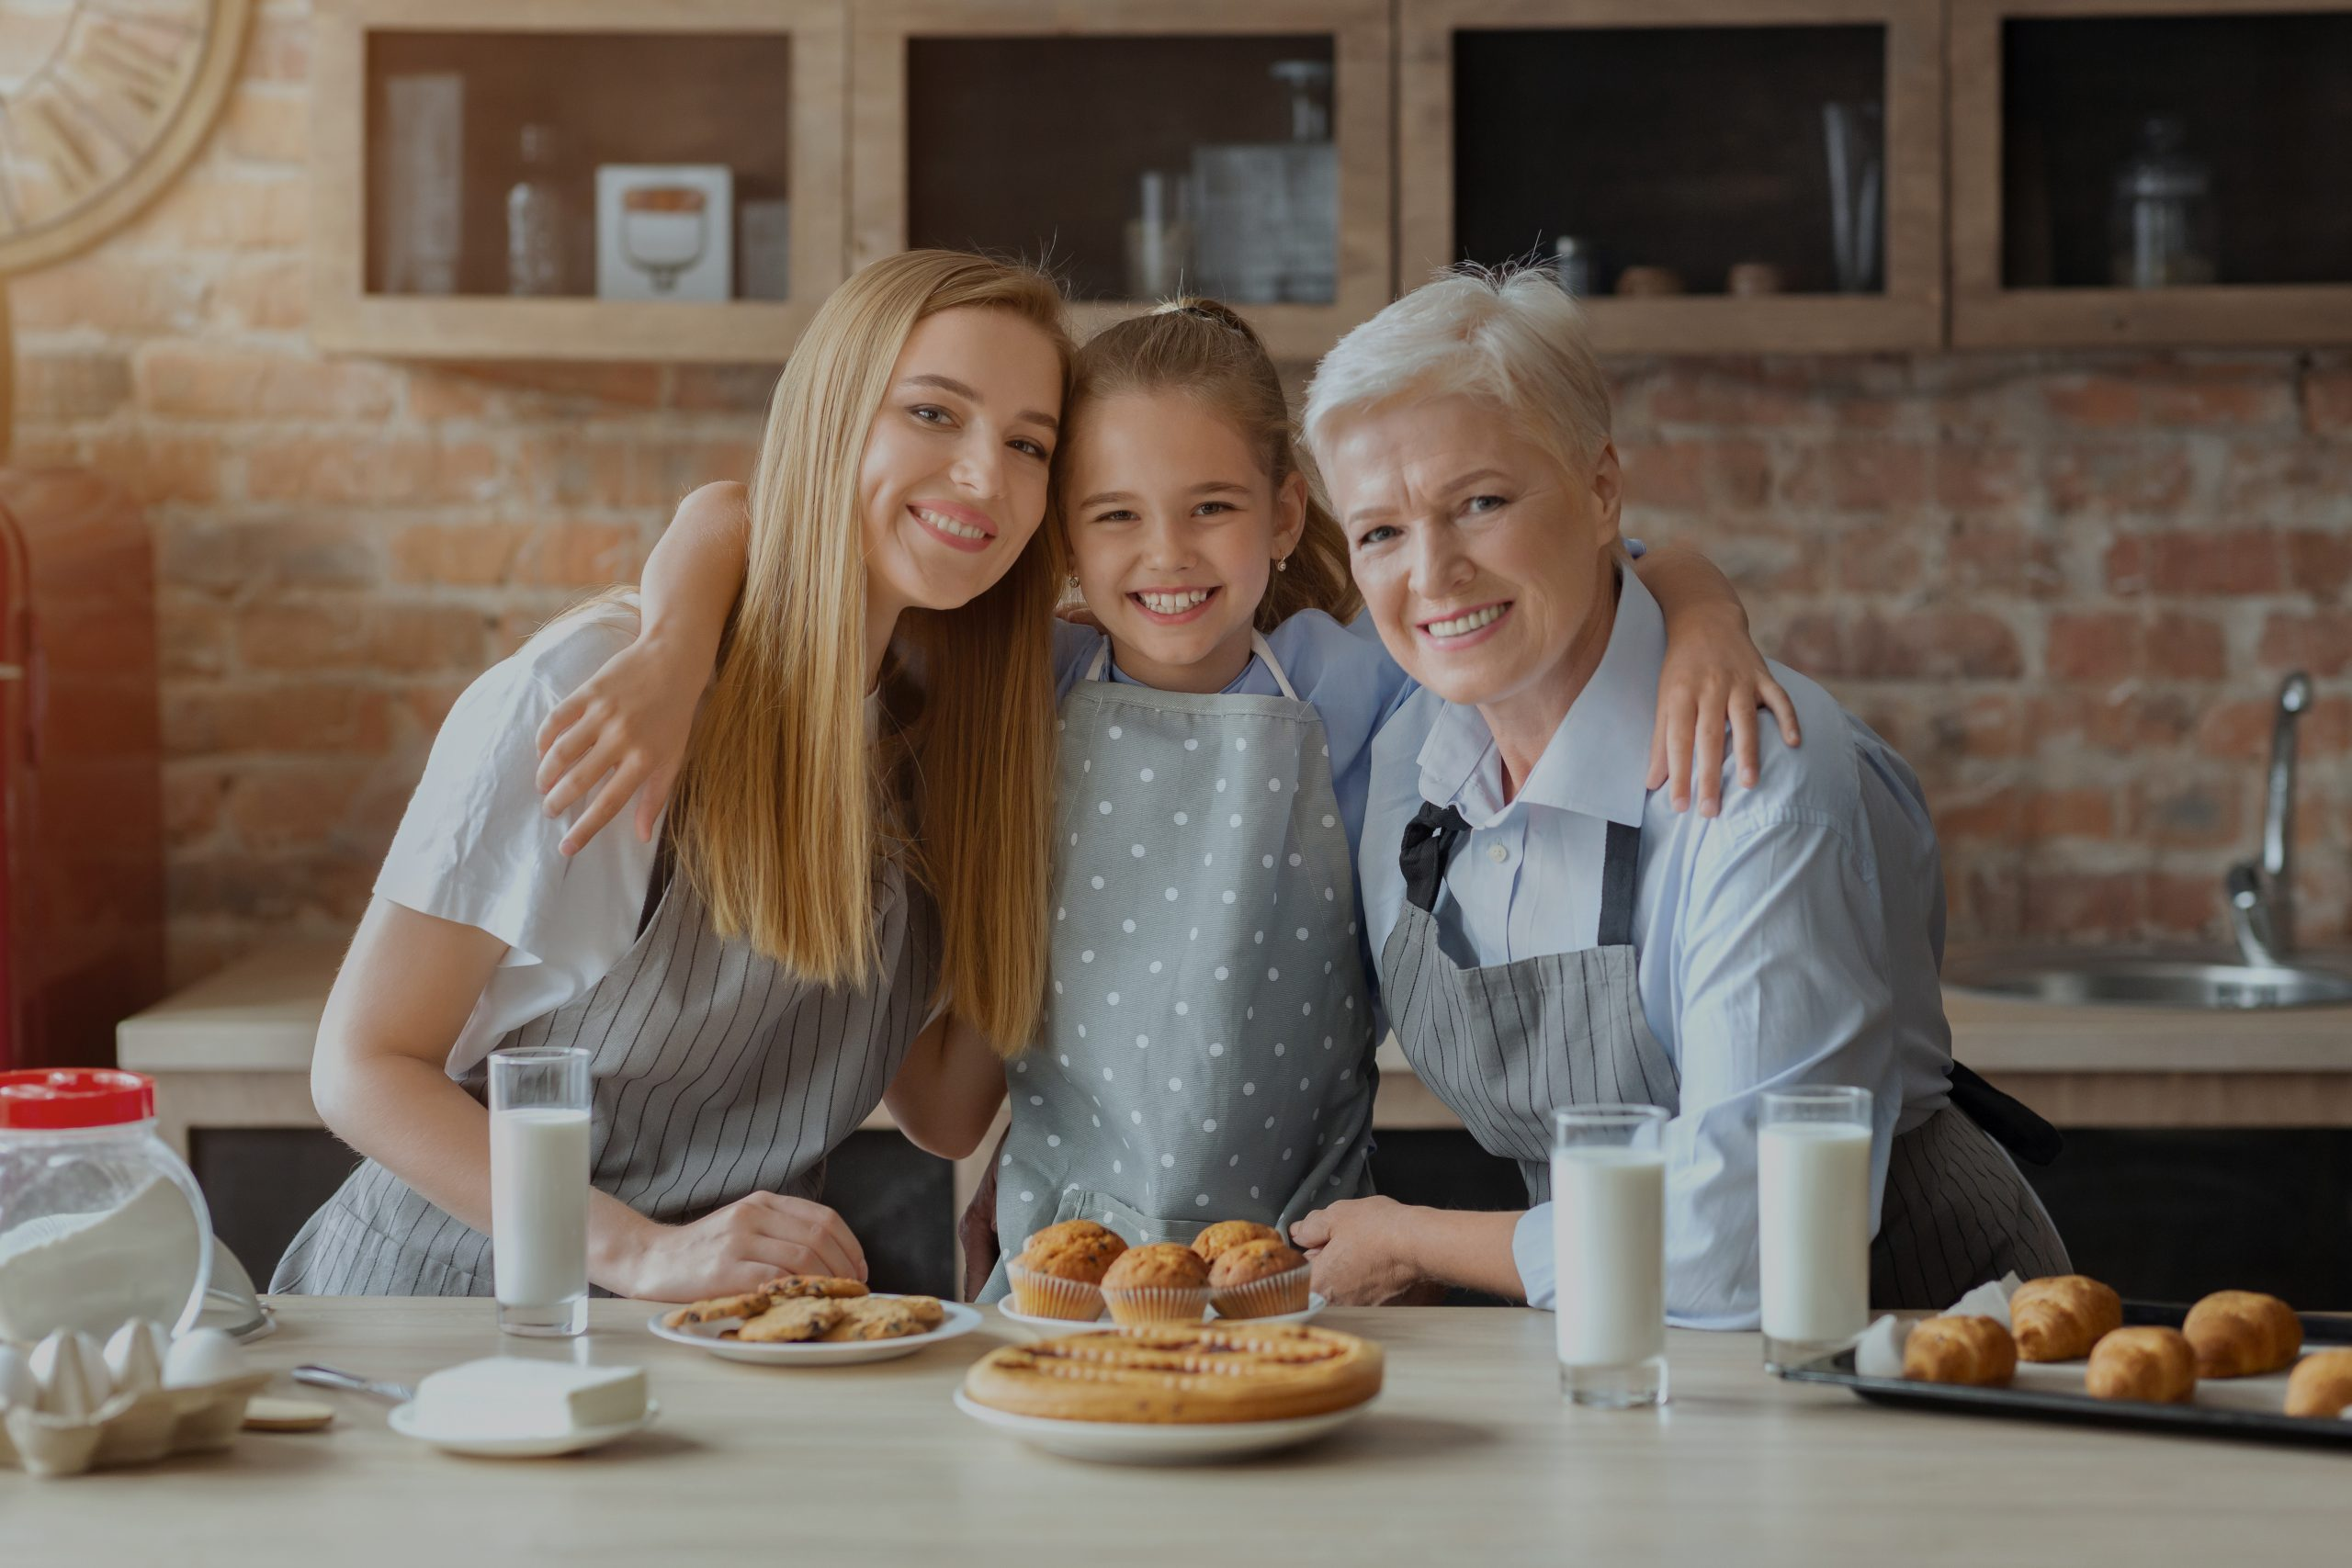 When Age Doesn't Matter – Or Customers' Habits by Generation: Part 2